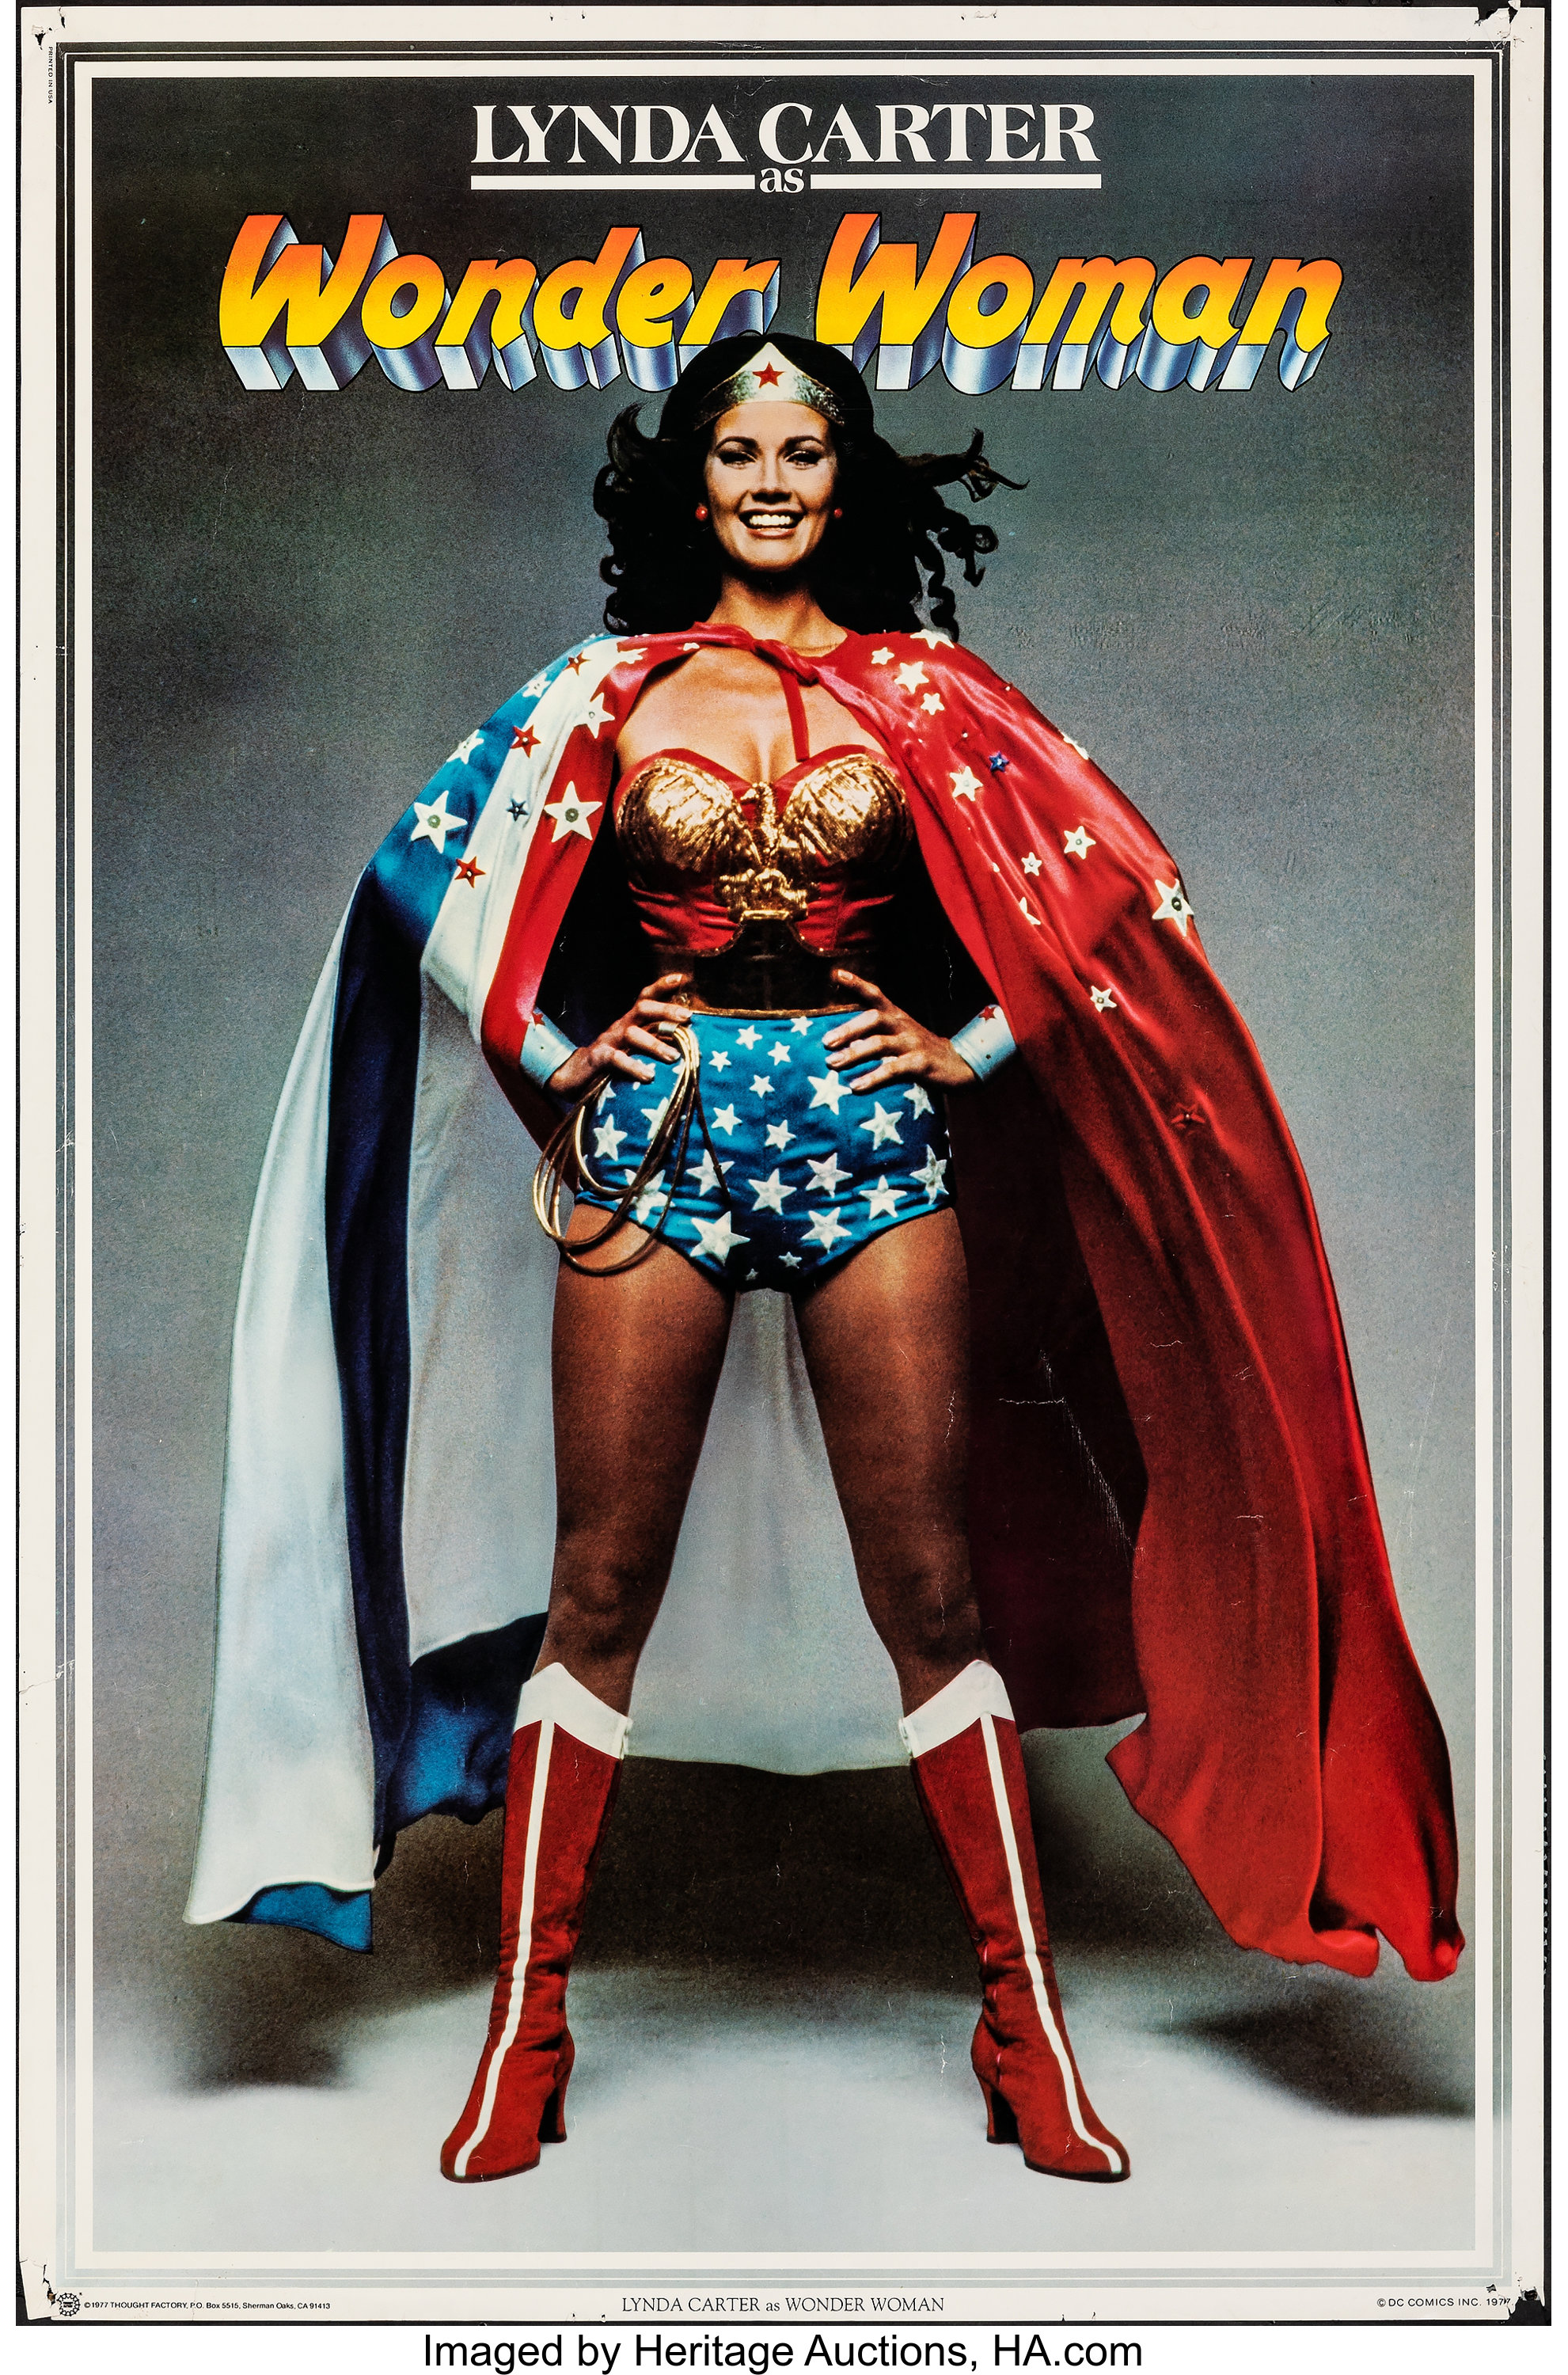 WONDER WOMAN POSTER Thought Factory 1977 DC